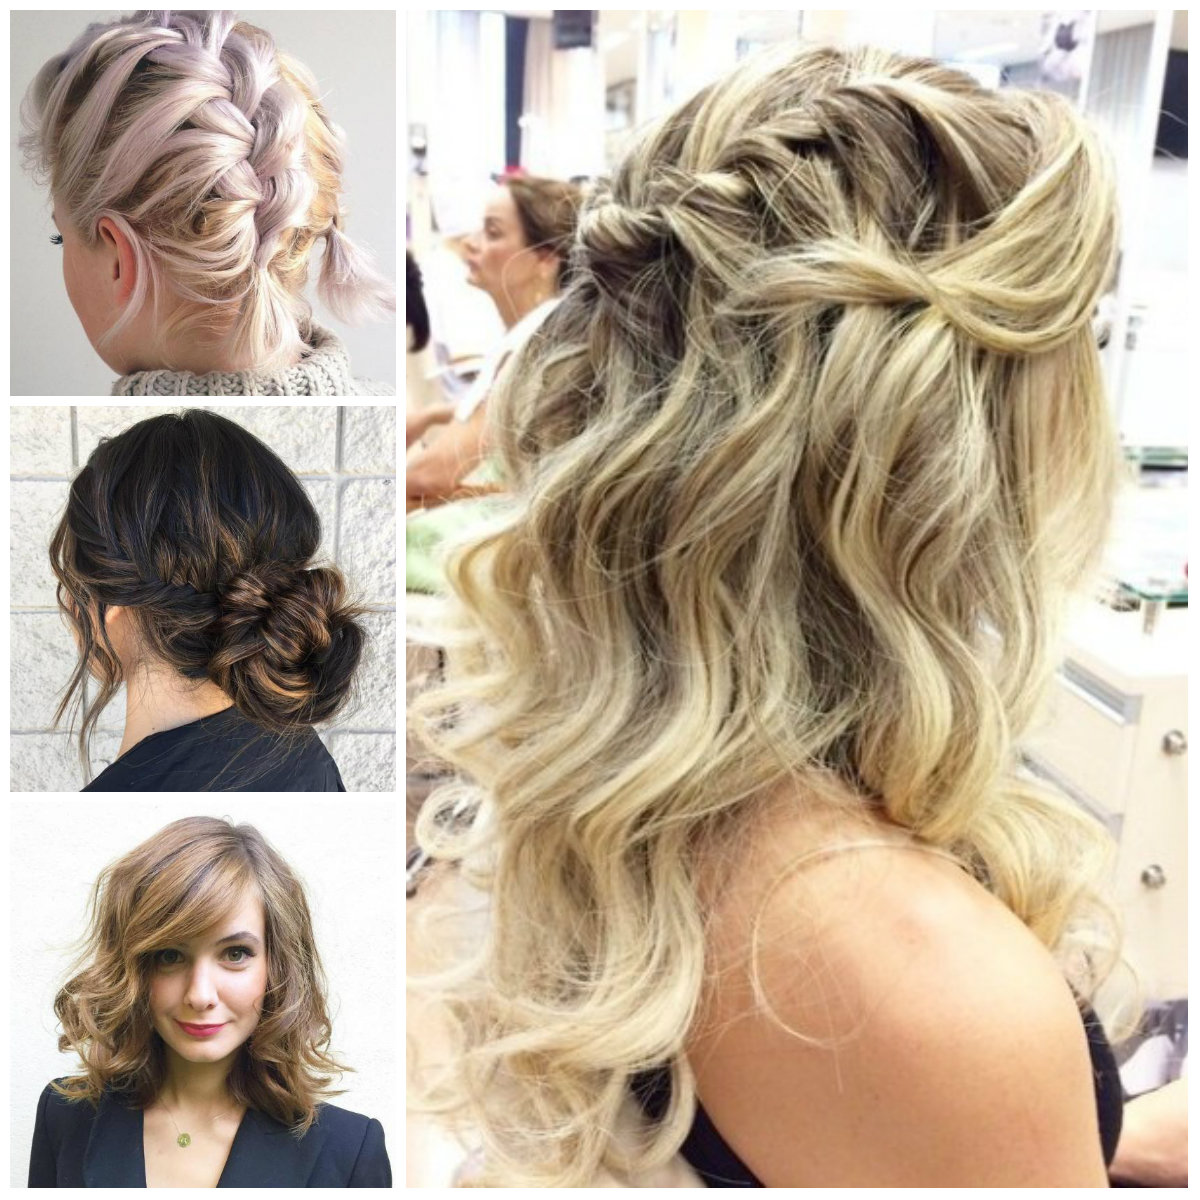 Messy Hair Styles Messy Hairstyles  2017 Haircuts Hairstyles And Hair Colors